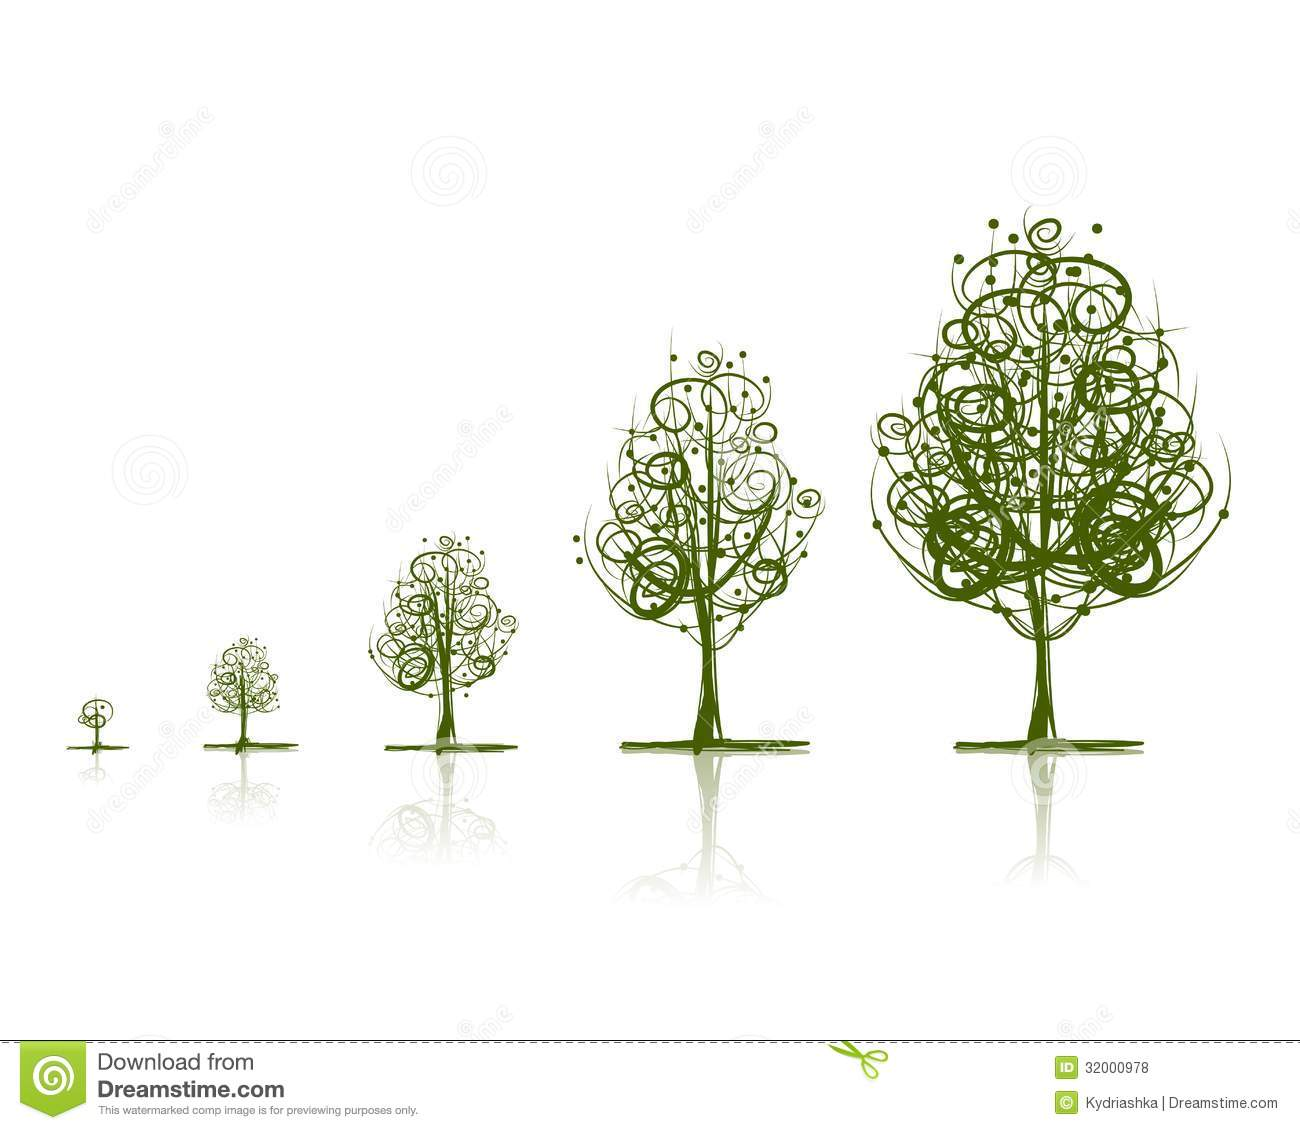 Stages of growing tree for your design. This is file of EPS10 format.